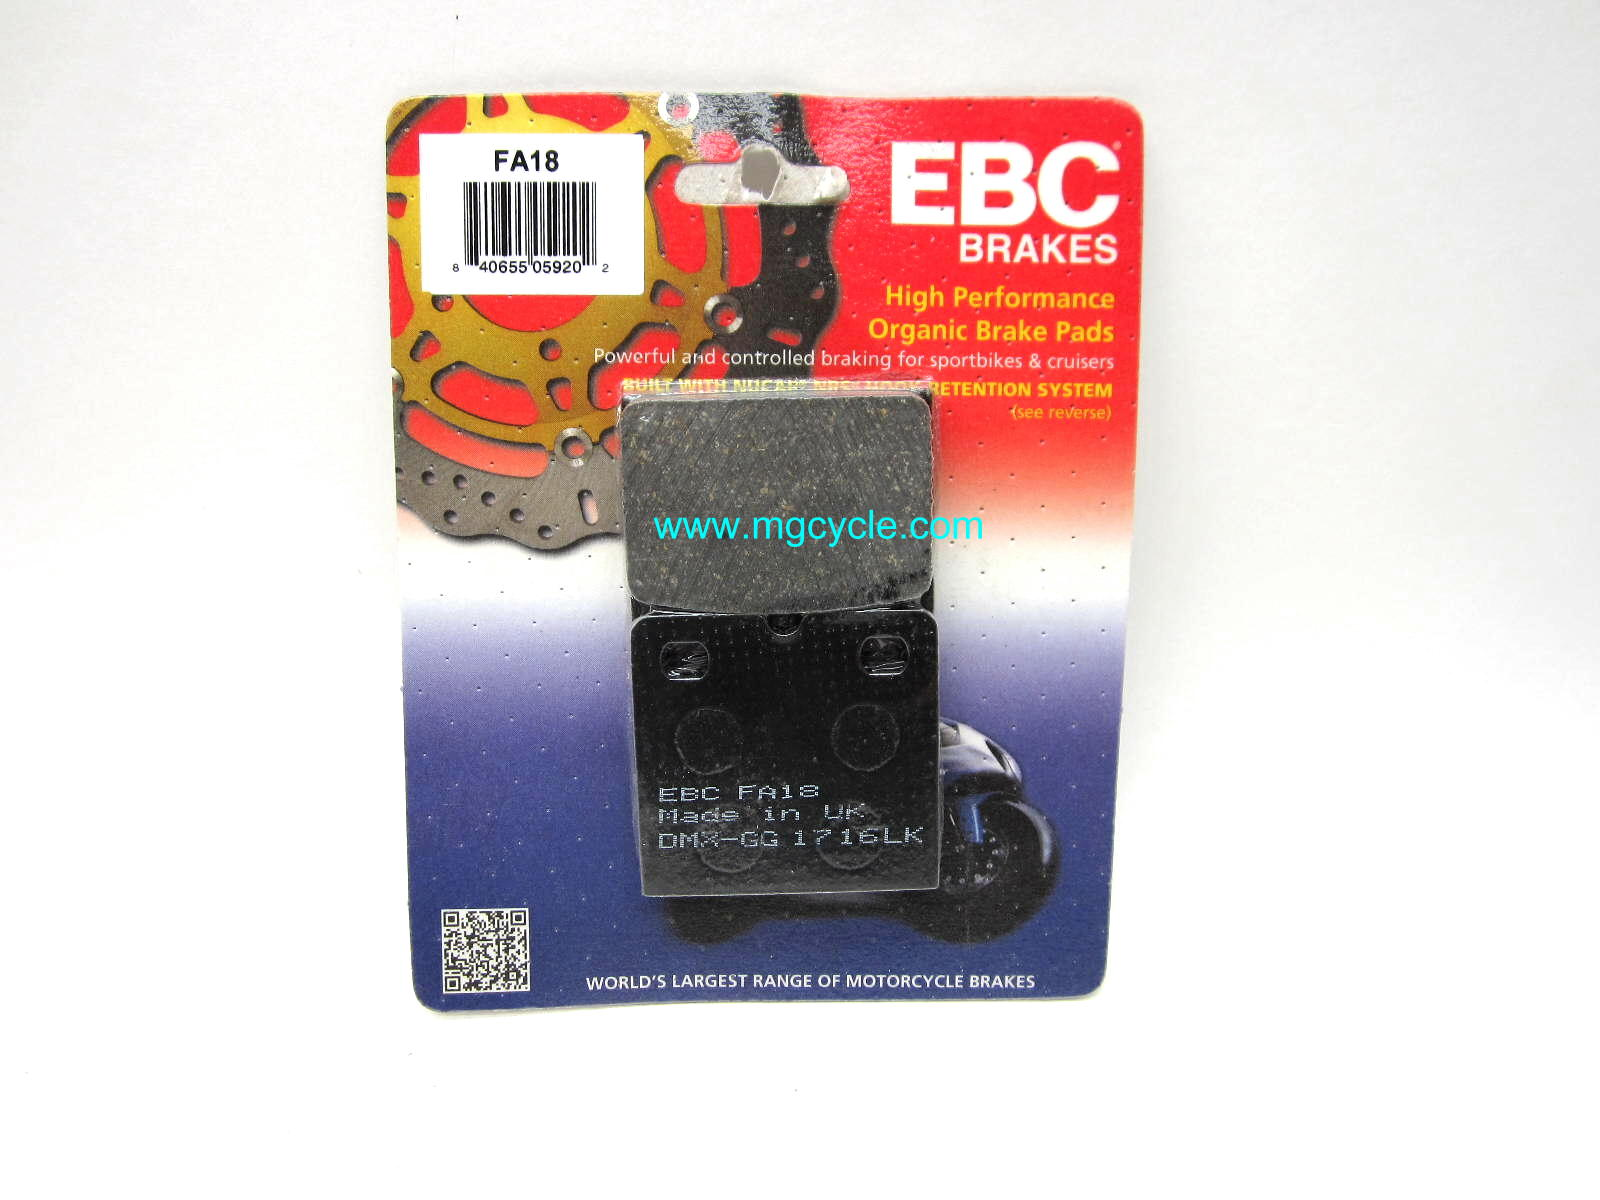 EBC kevlar organic brake pads, for F08 caliper Big Twin Guzzi